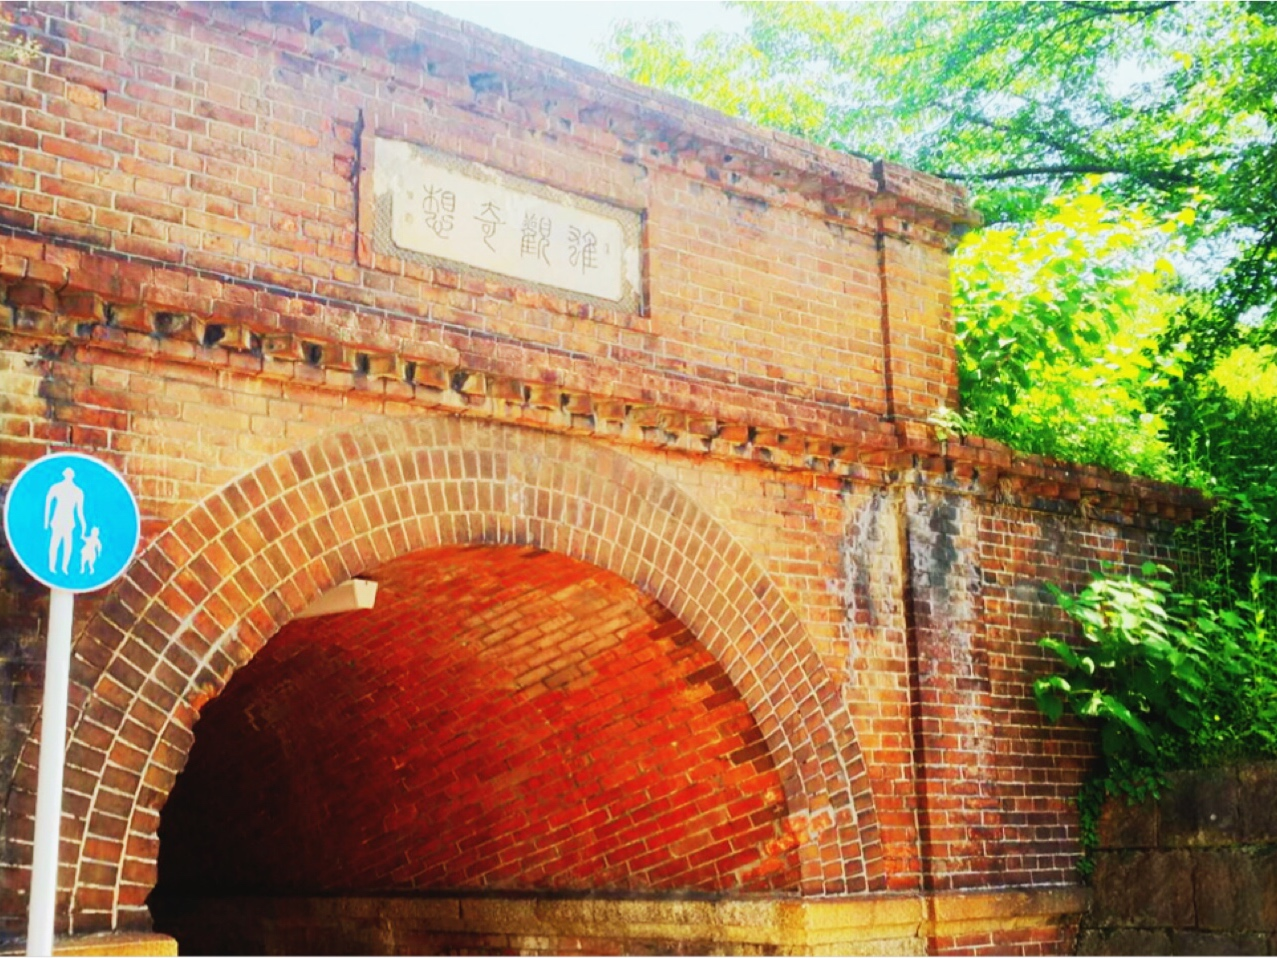 The brick tunnel in which hints of history remain